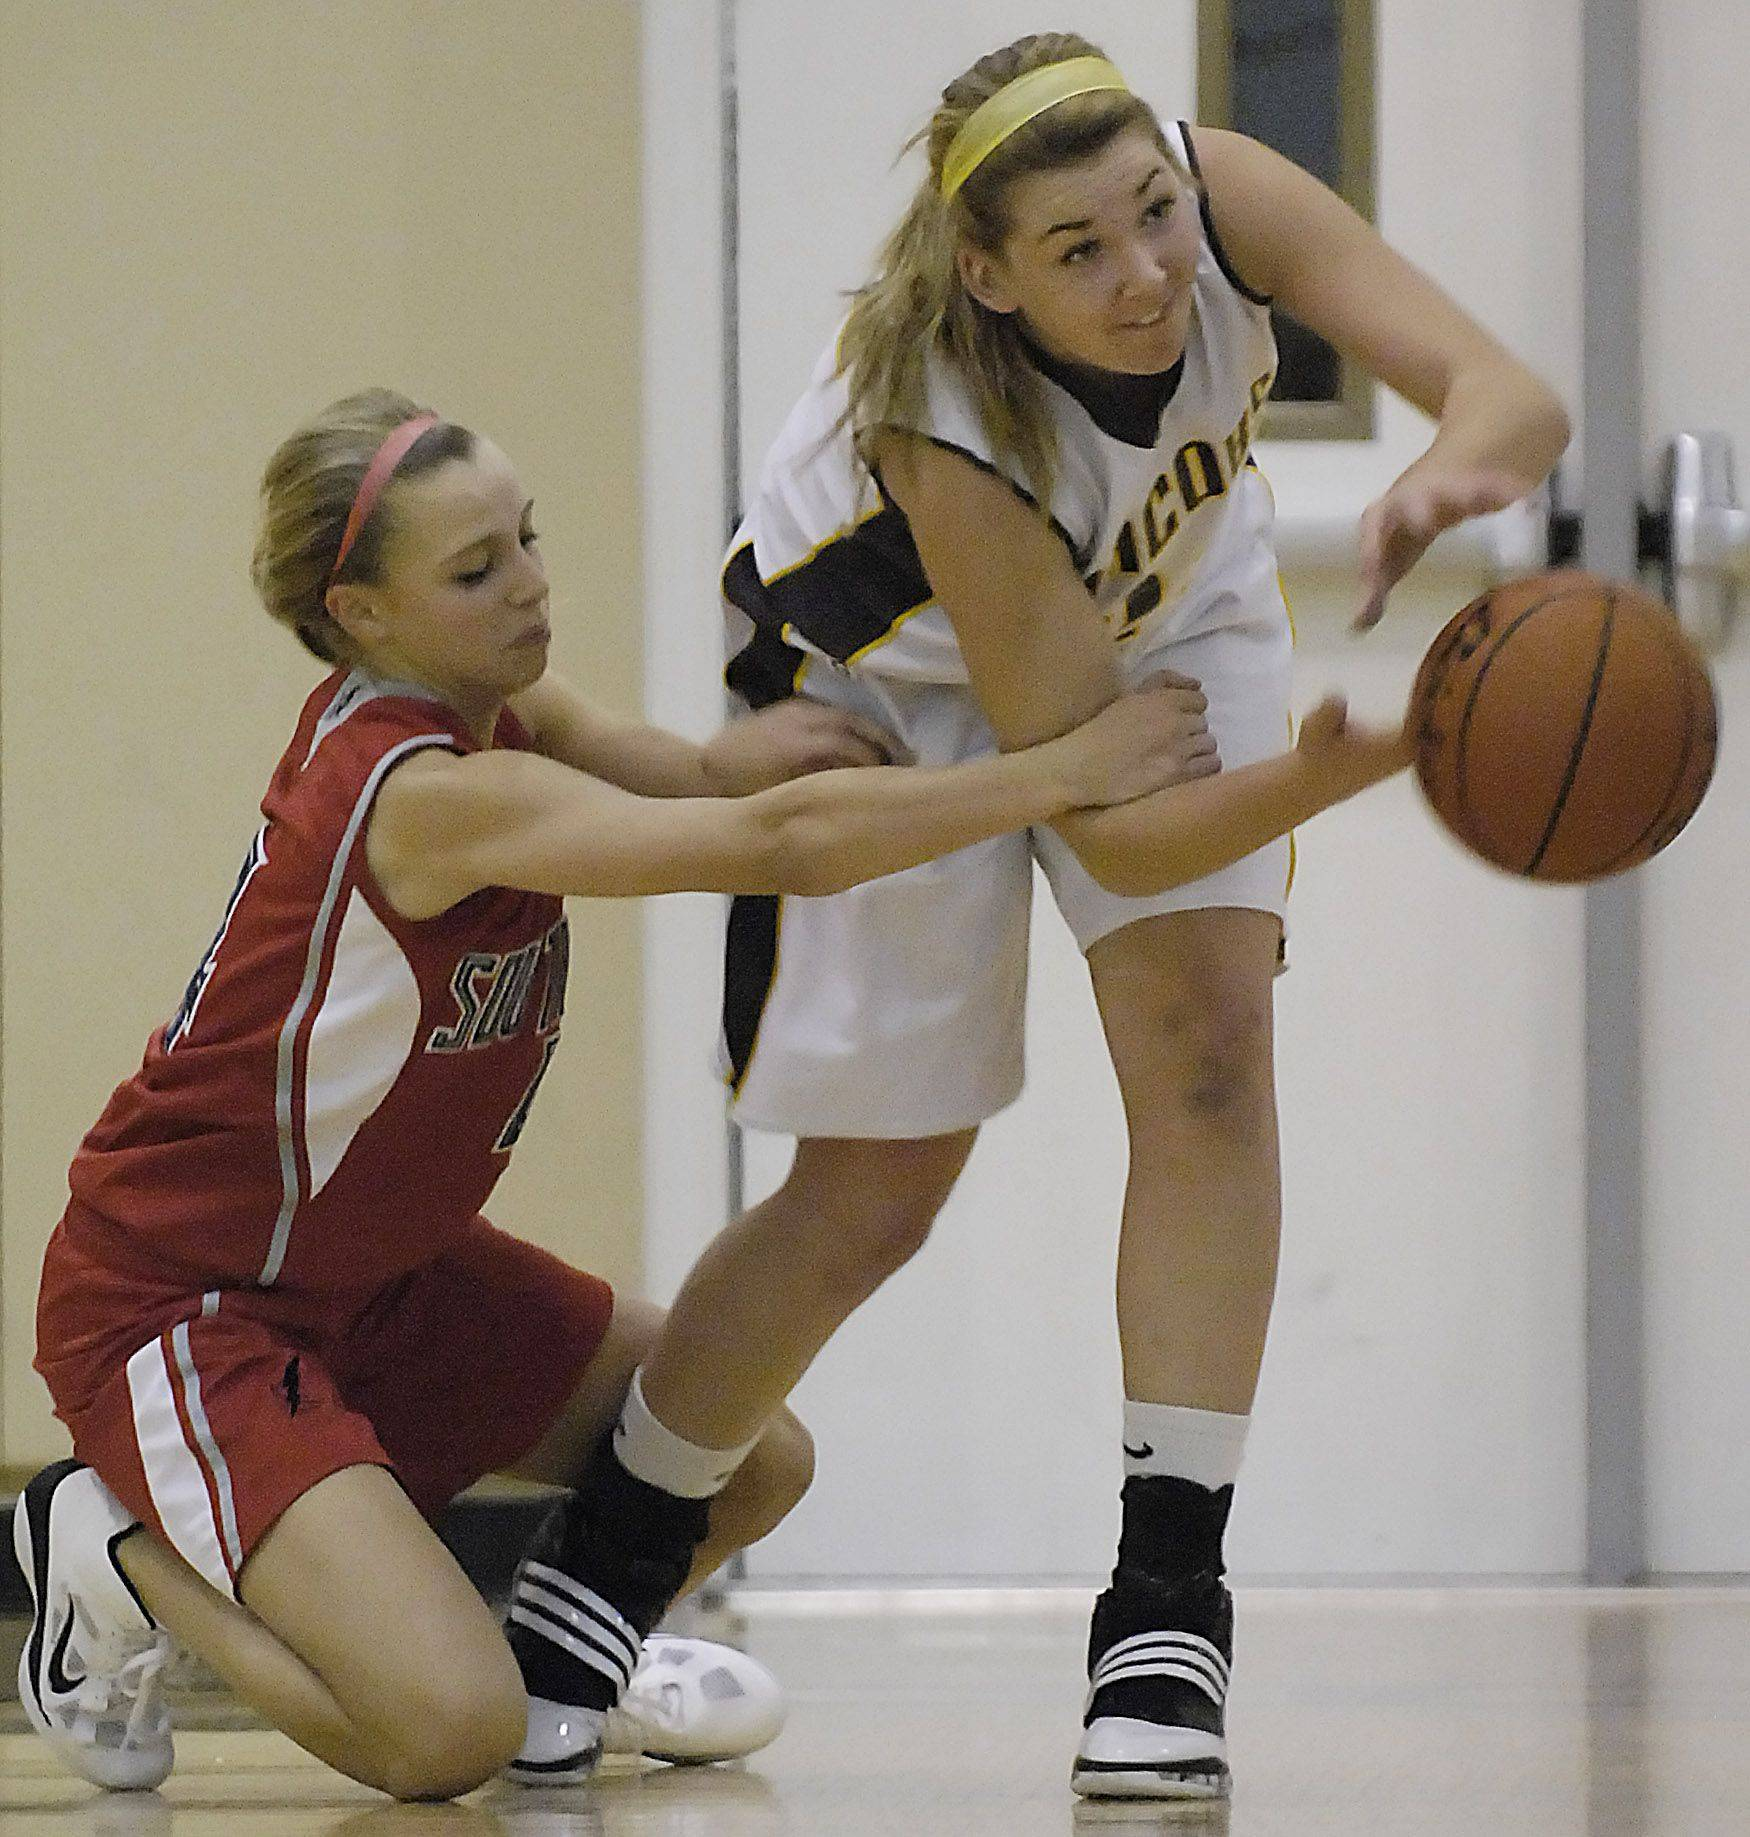 South Elgin's Savanah Uveges fouls Jacobs' Melanie Schwerdtmann Wednesday in Algonquin.